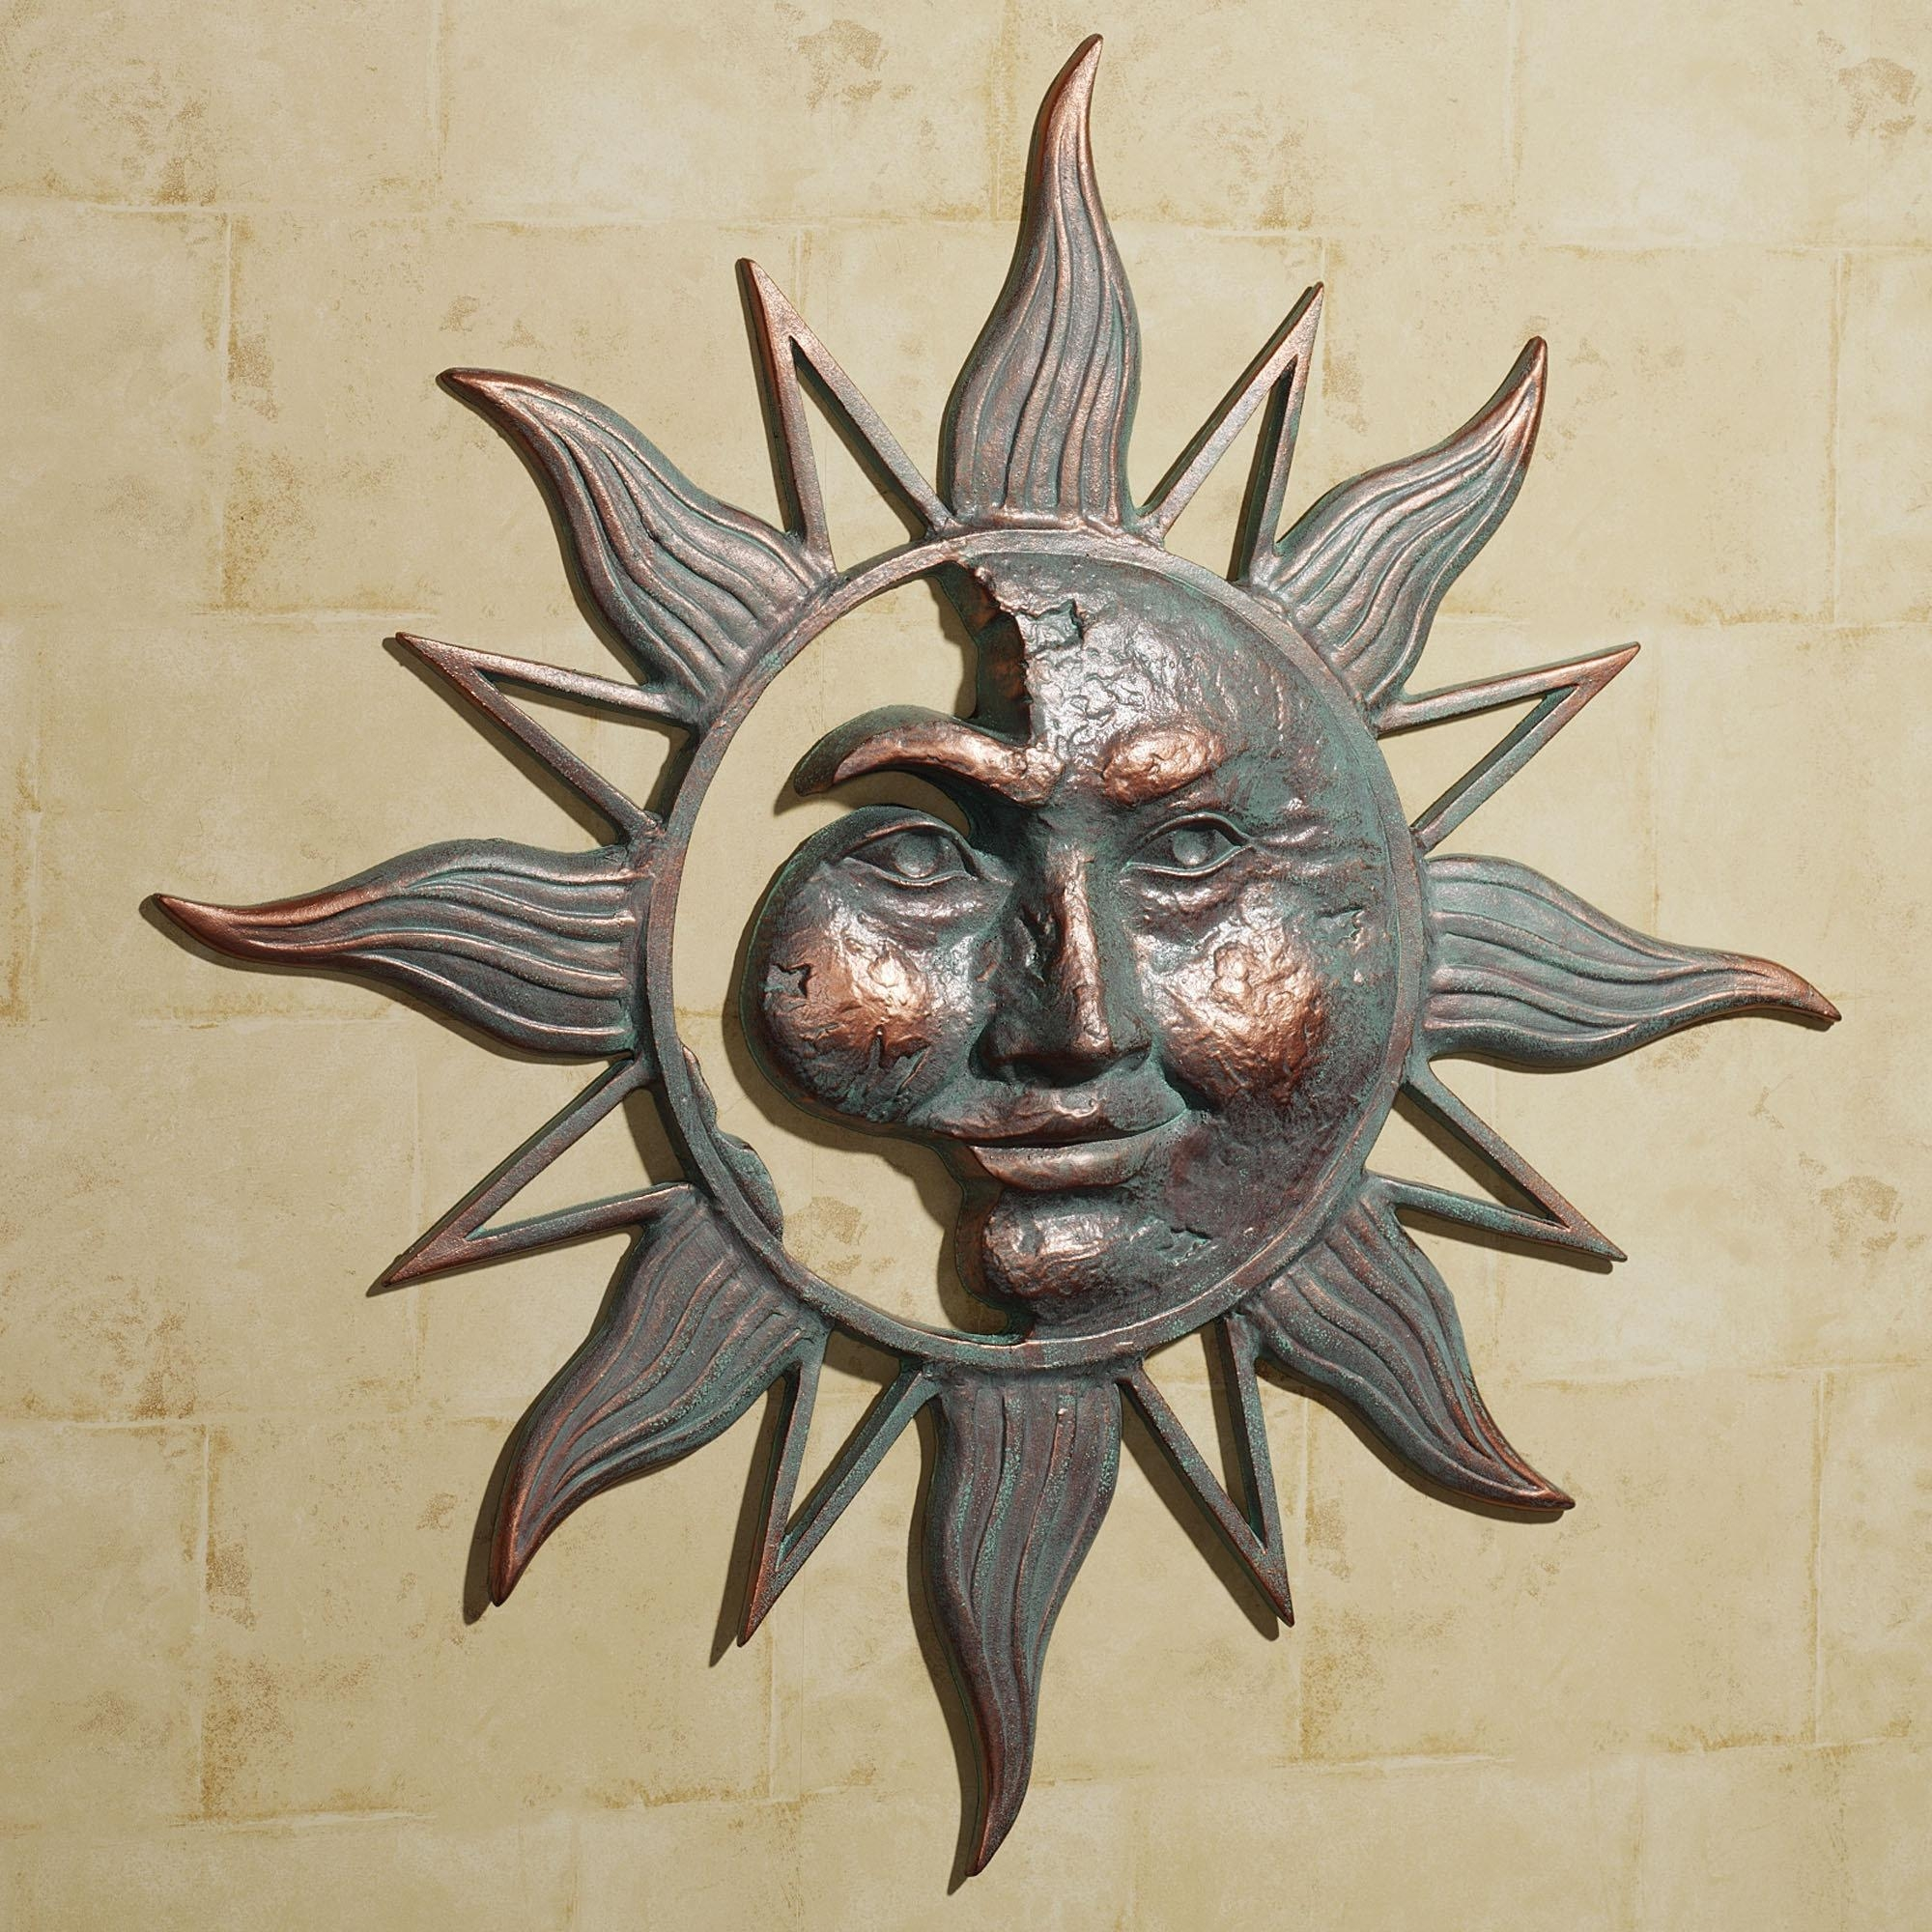 Wall Art Design Ideas: Awesome Sun Face Wall Art Costco, Sun Wall Throughout Costco Wall Art (Image 20 of 20)